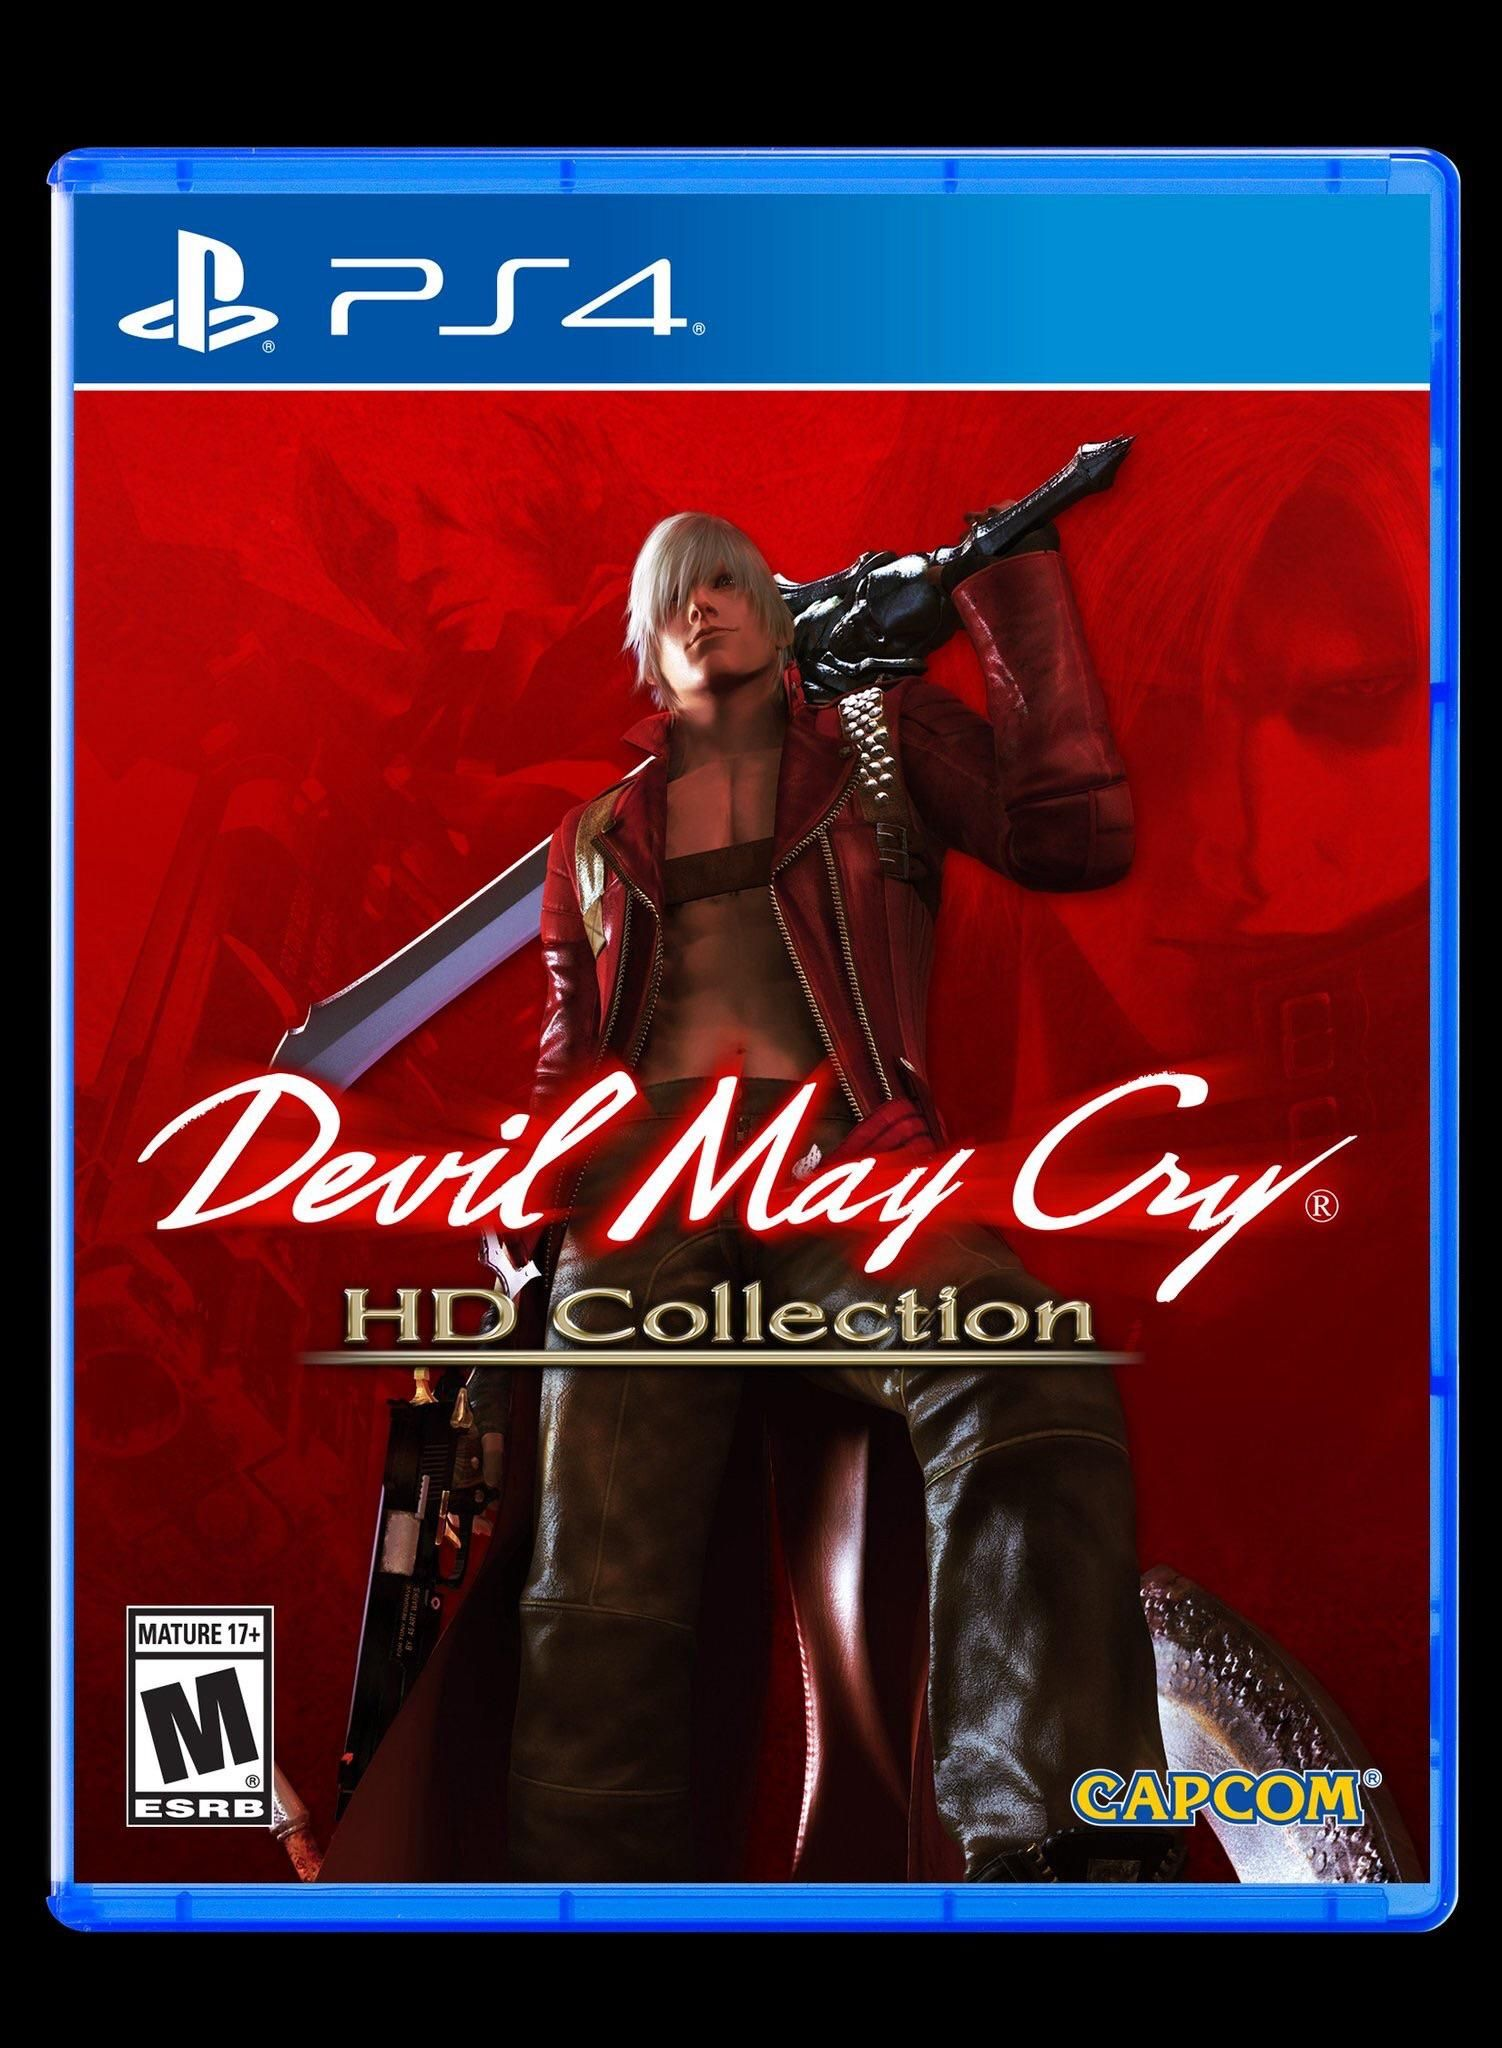 Image Devil May Cry Hd Collection Ps4 Box Art Playstation4 Sony Super Dungeon Bros Videogames Playstation Gamer Games Gaming